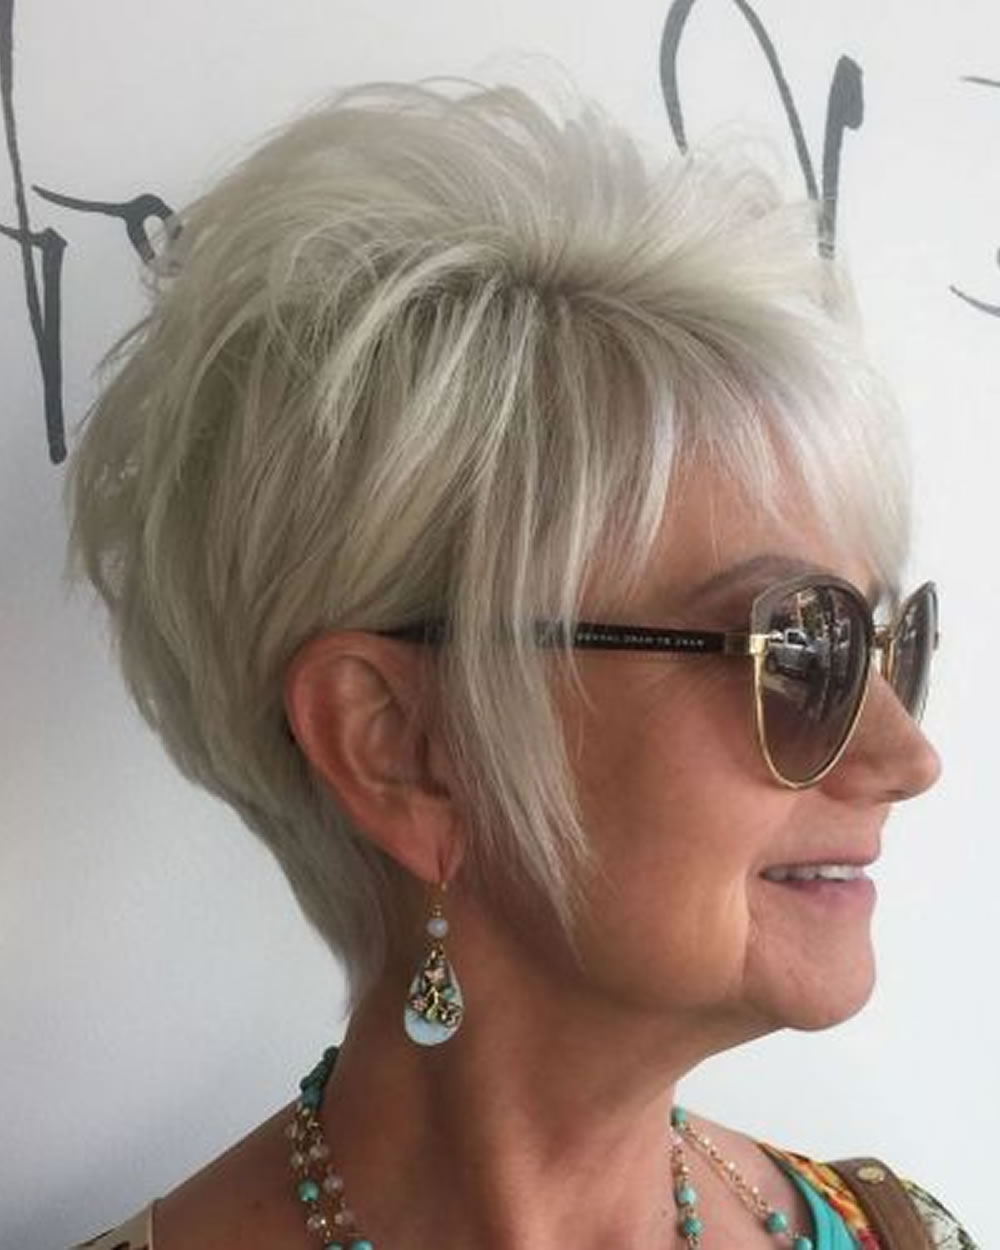 Pixie Short Haircuts For Older Women Over 50 & 2018 2019 Short Throughout Ladies Short Hairstyles For Over 50S (View 8 of 25)